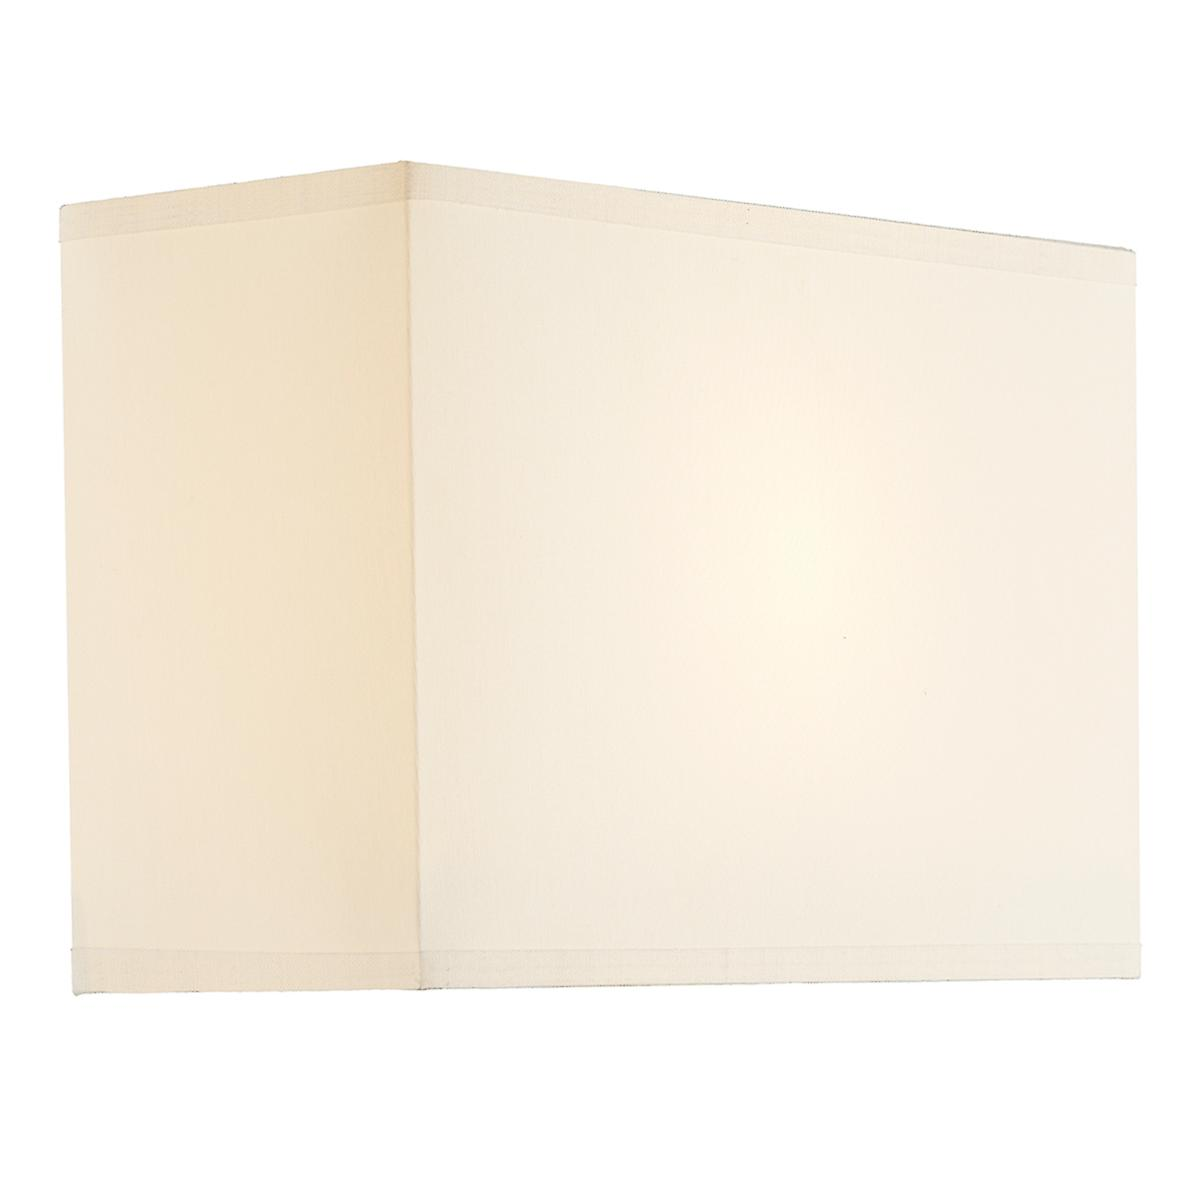 Dar S1025 Piza Cream Shade For Use With The Piza Wall Bracket